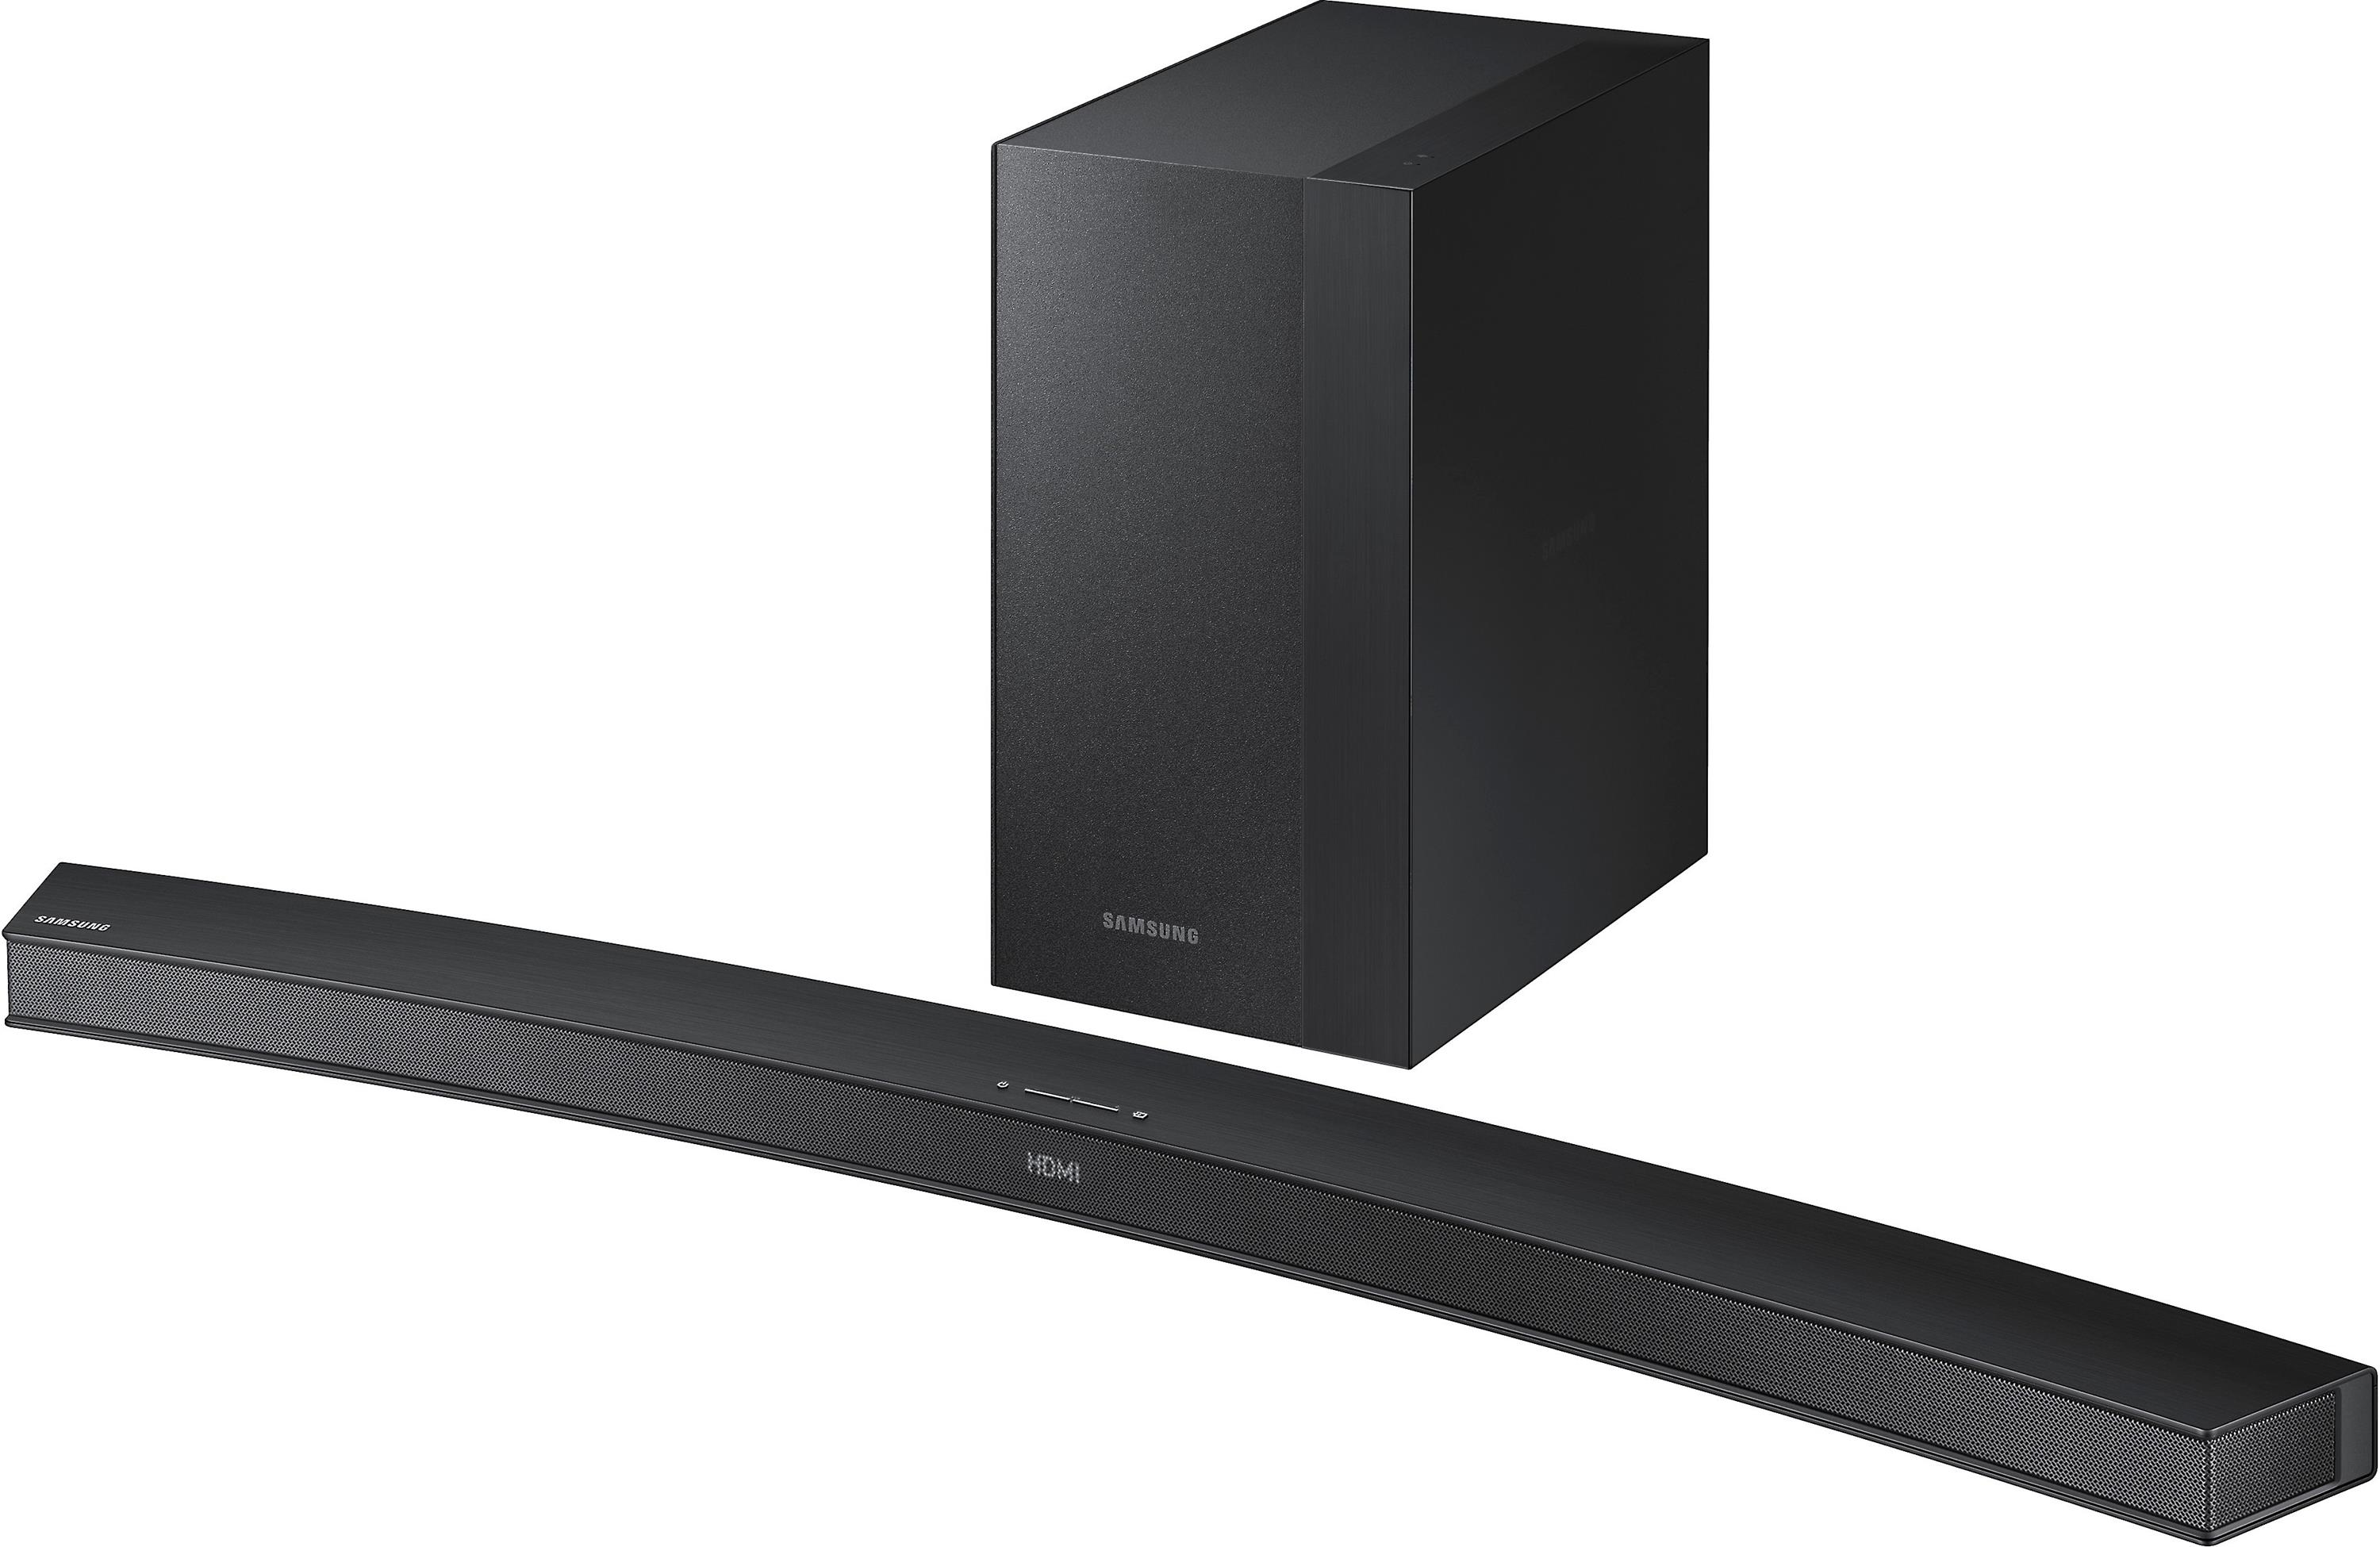 FREE curved sound barwith purchase of select Samsung curved TVs